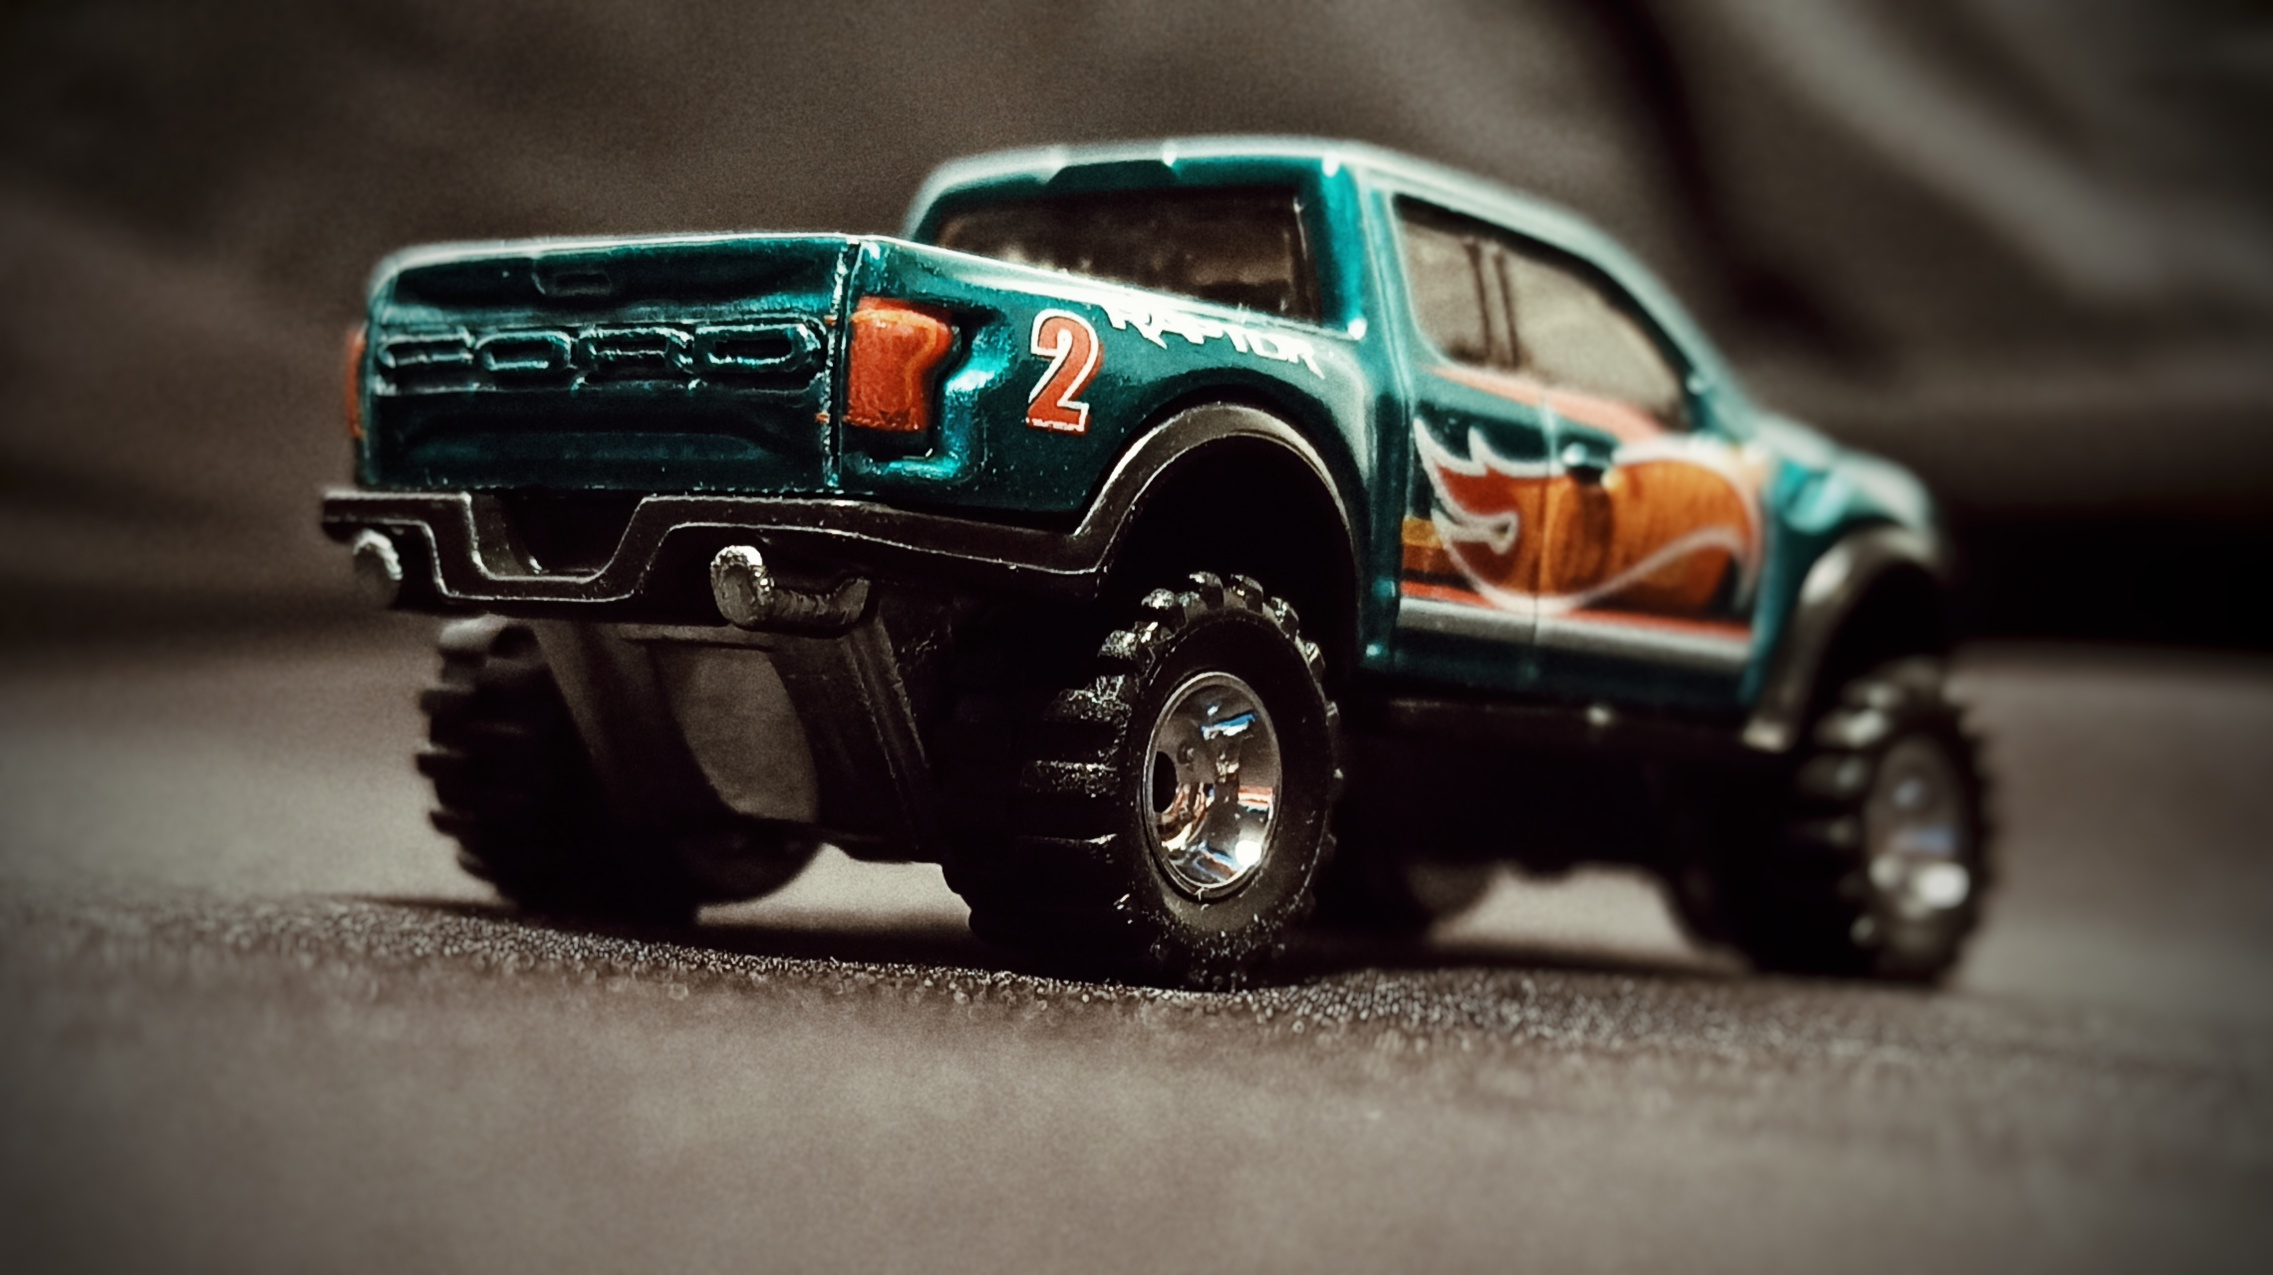 Hot Wheels '17 Ford F-150 Raptor (GTD72) 2021 Collector Edition (Dollar General Mail-in) spectraflame aqua green side angle